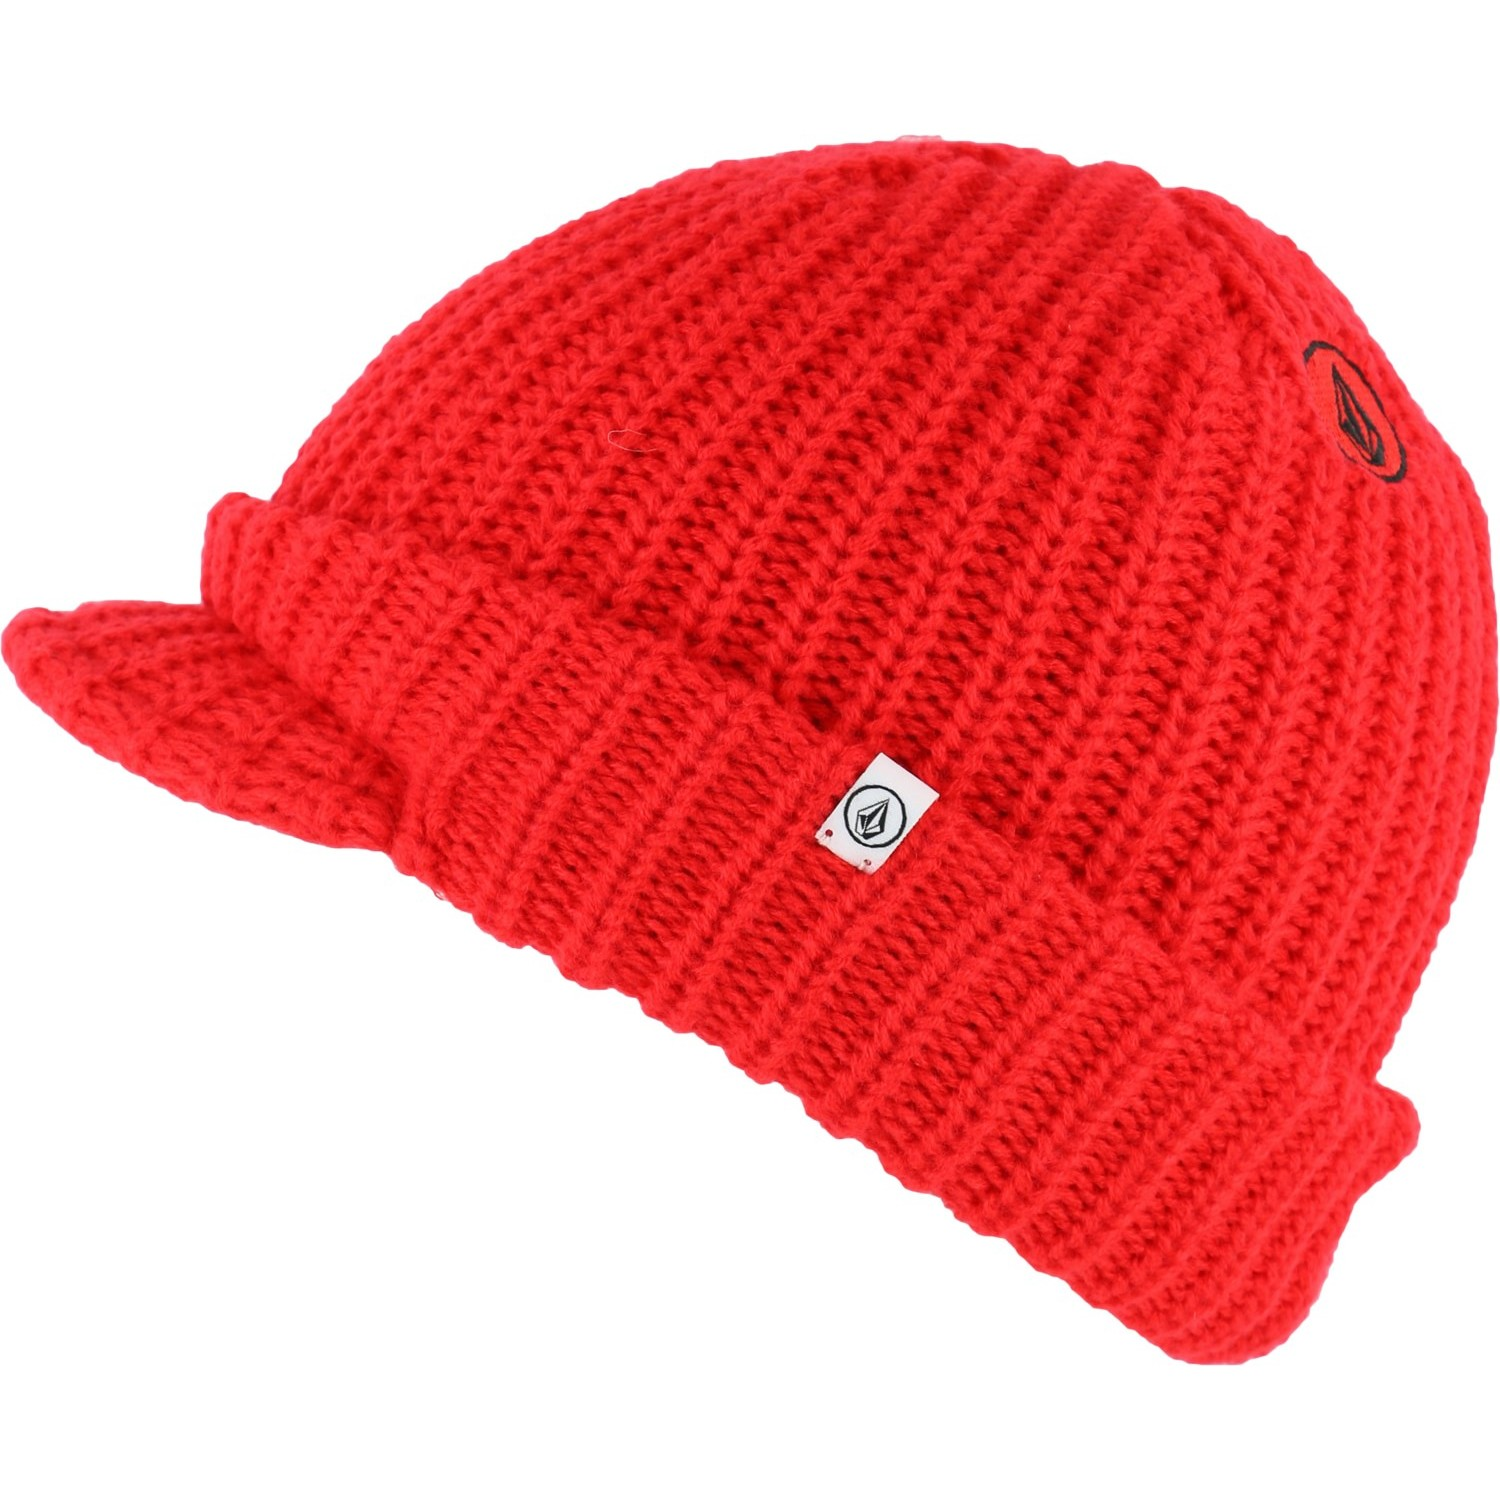 Trucker Beanie (Fire Red)